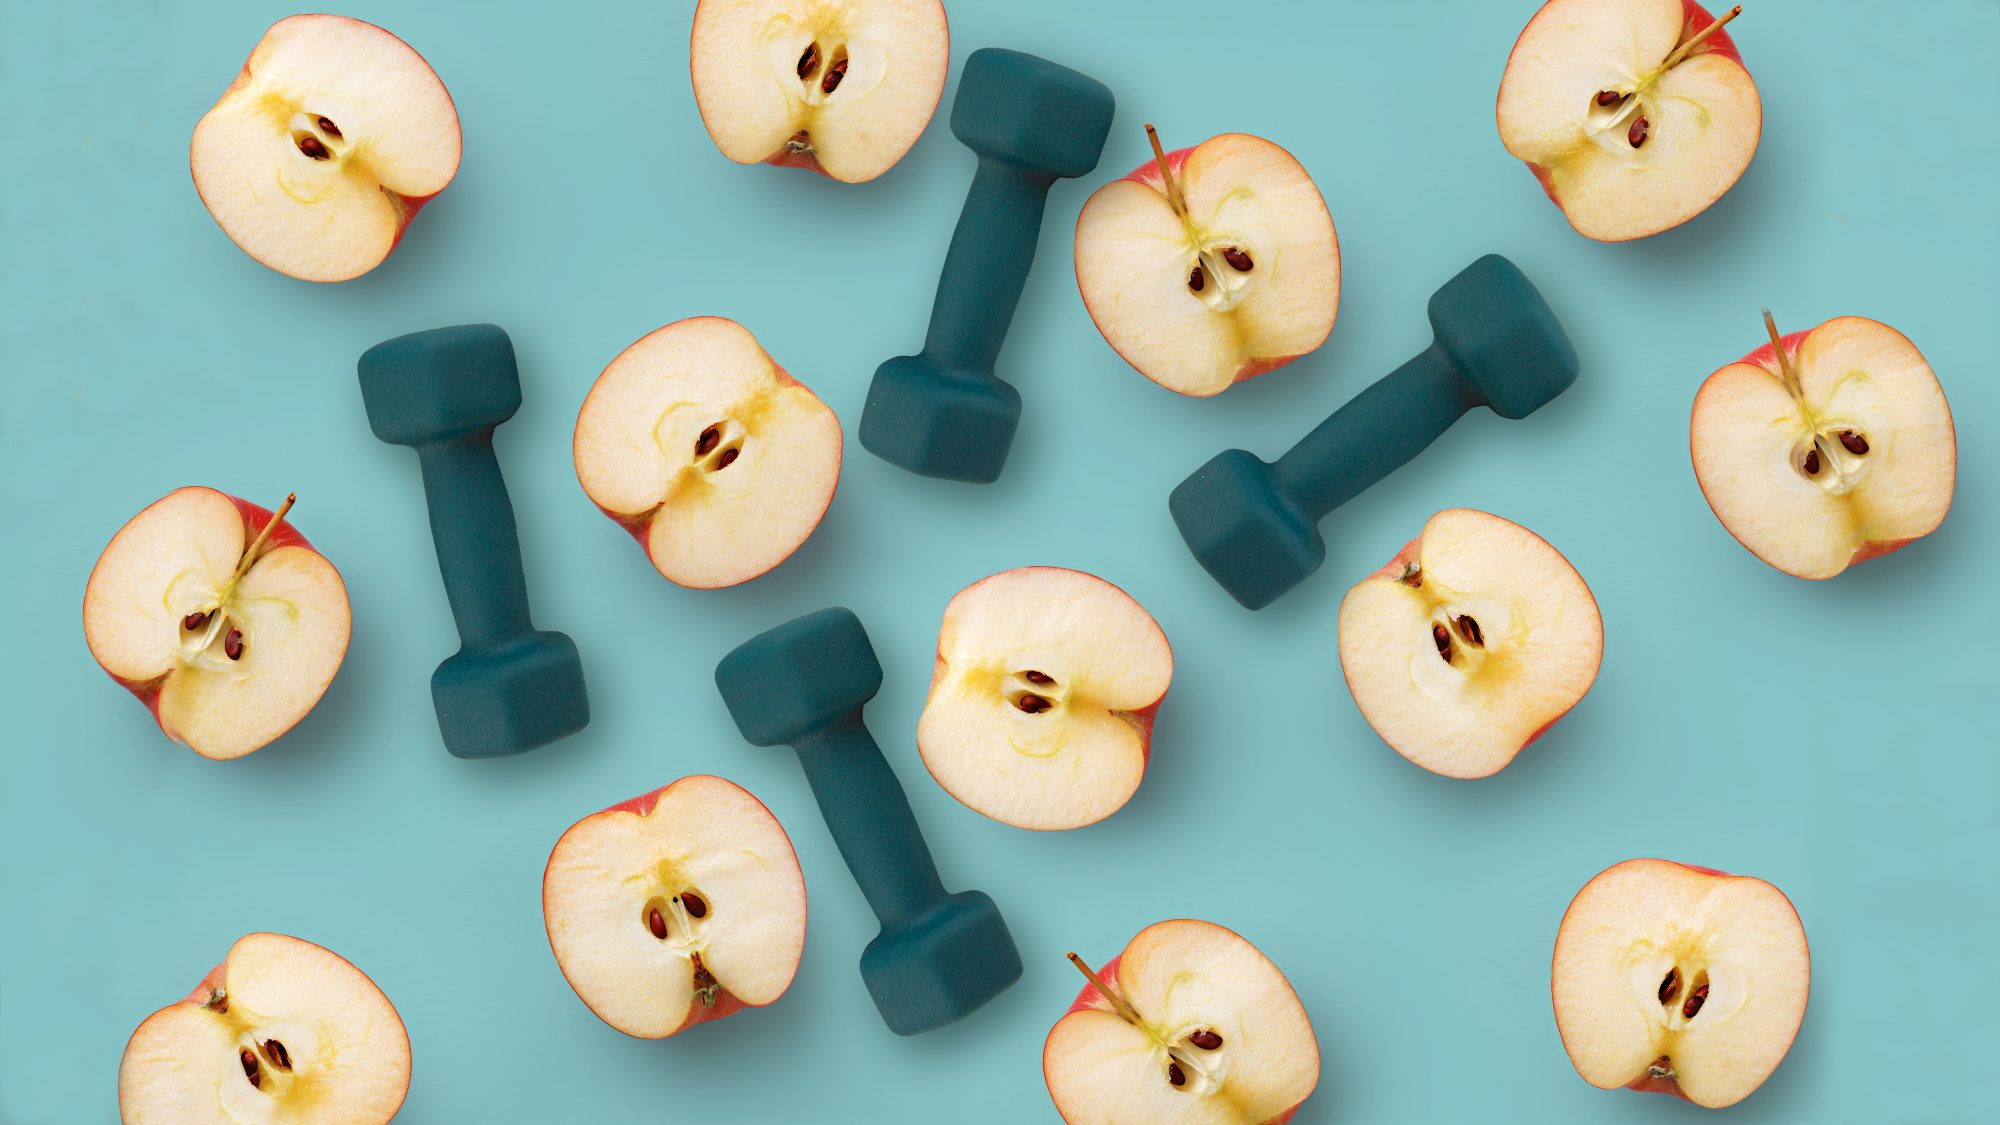 workout-healthy-food